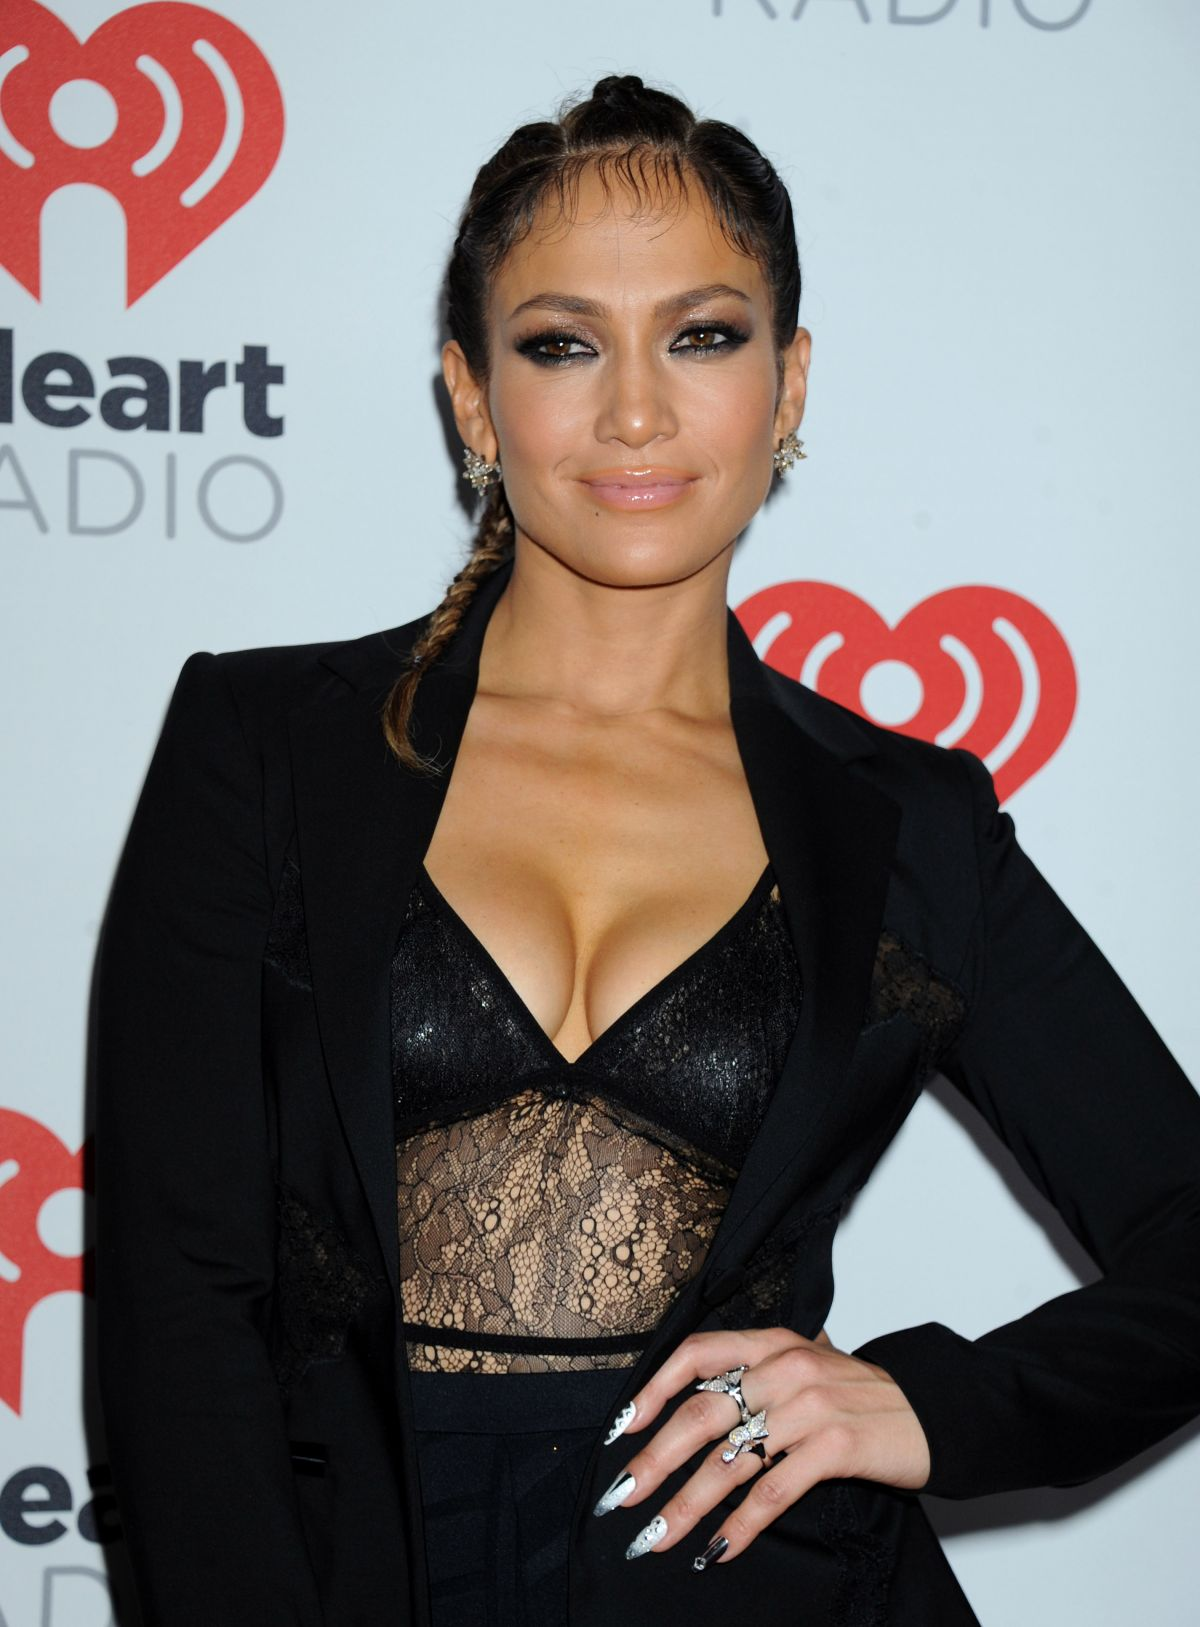 JENNIFER LOPEZ at 2015 iHeartradio Music Festival in Las Vegas 09/19 ...